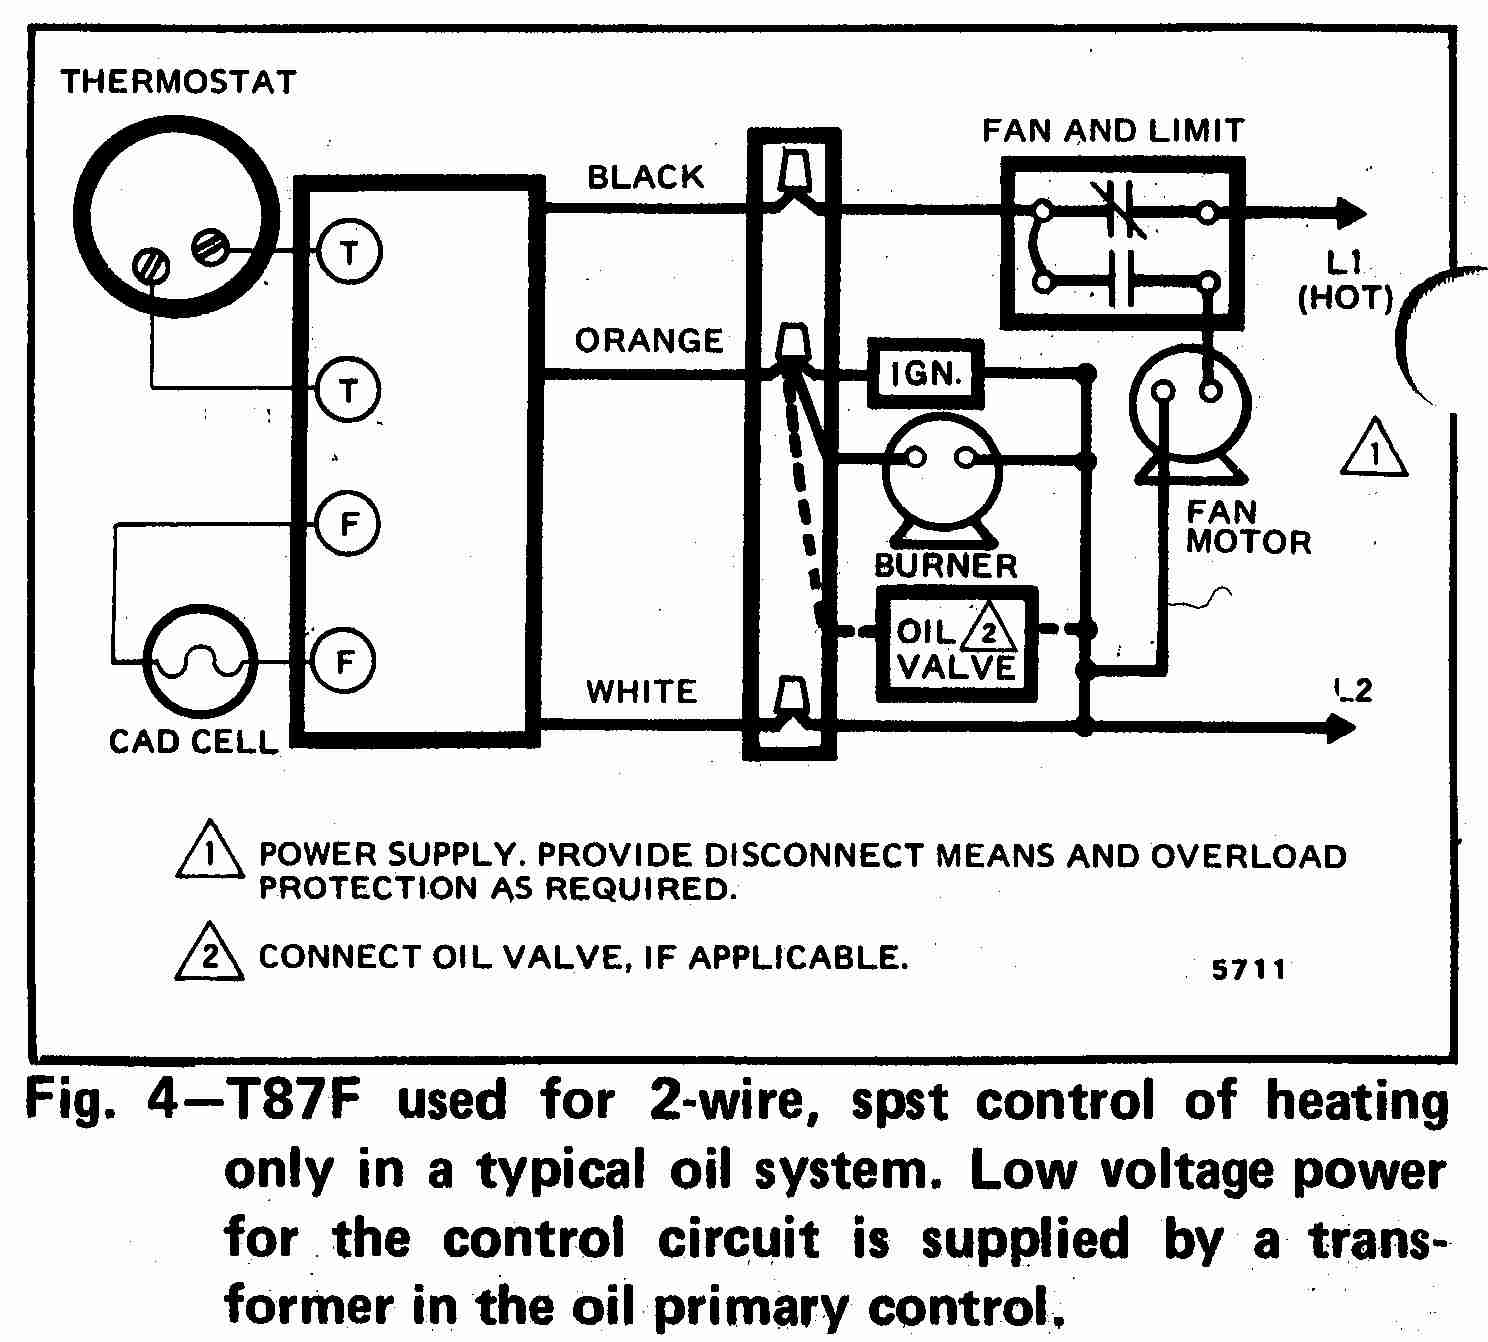 TT_T87F_0002_2W_DJF room thermostat wiring diagrams for hvac systems wiring diagram for hot water tank thermostat at gsmx.co